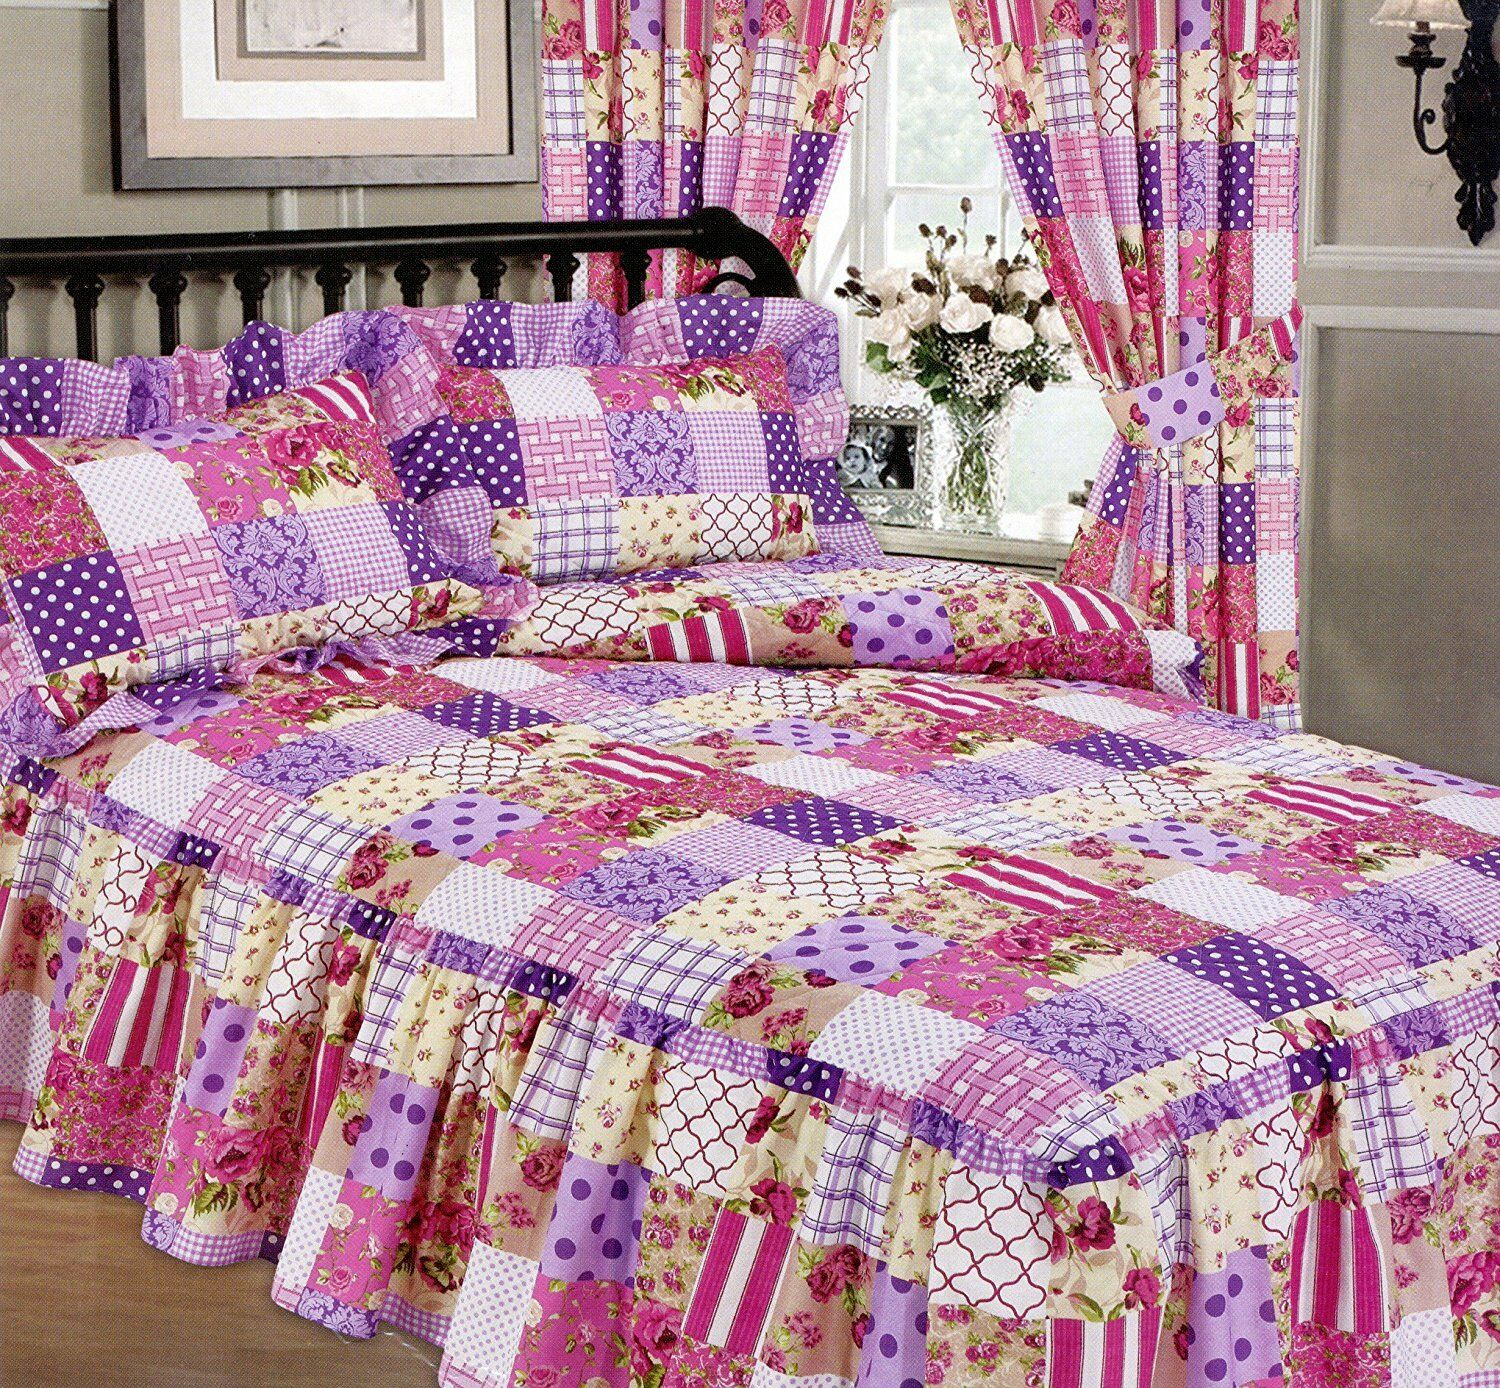 KING SIZE PATCHWORK BERRY LUXURY QUILTED FITTED BEDSPREAD FRILL purpleC WHITE